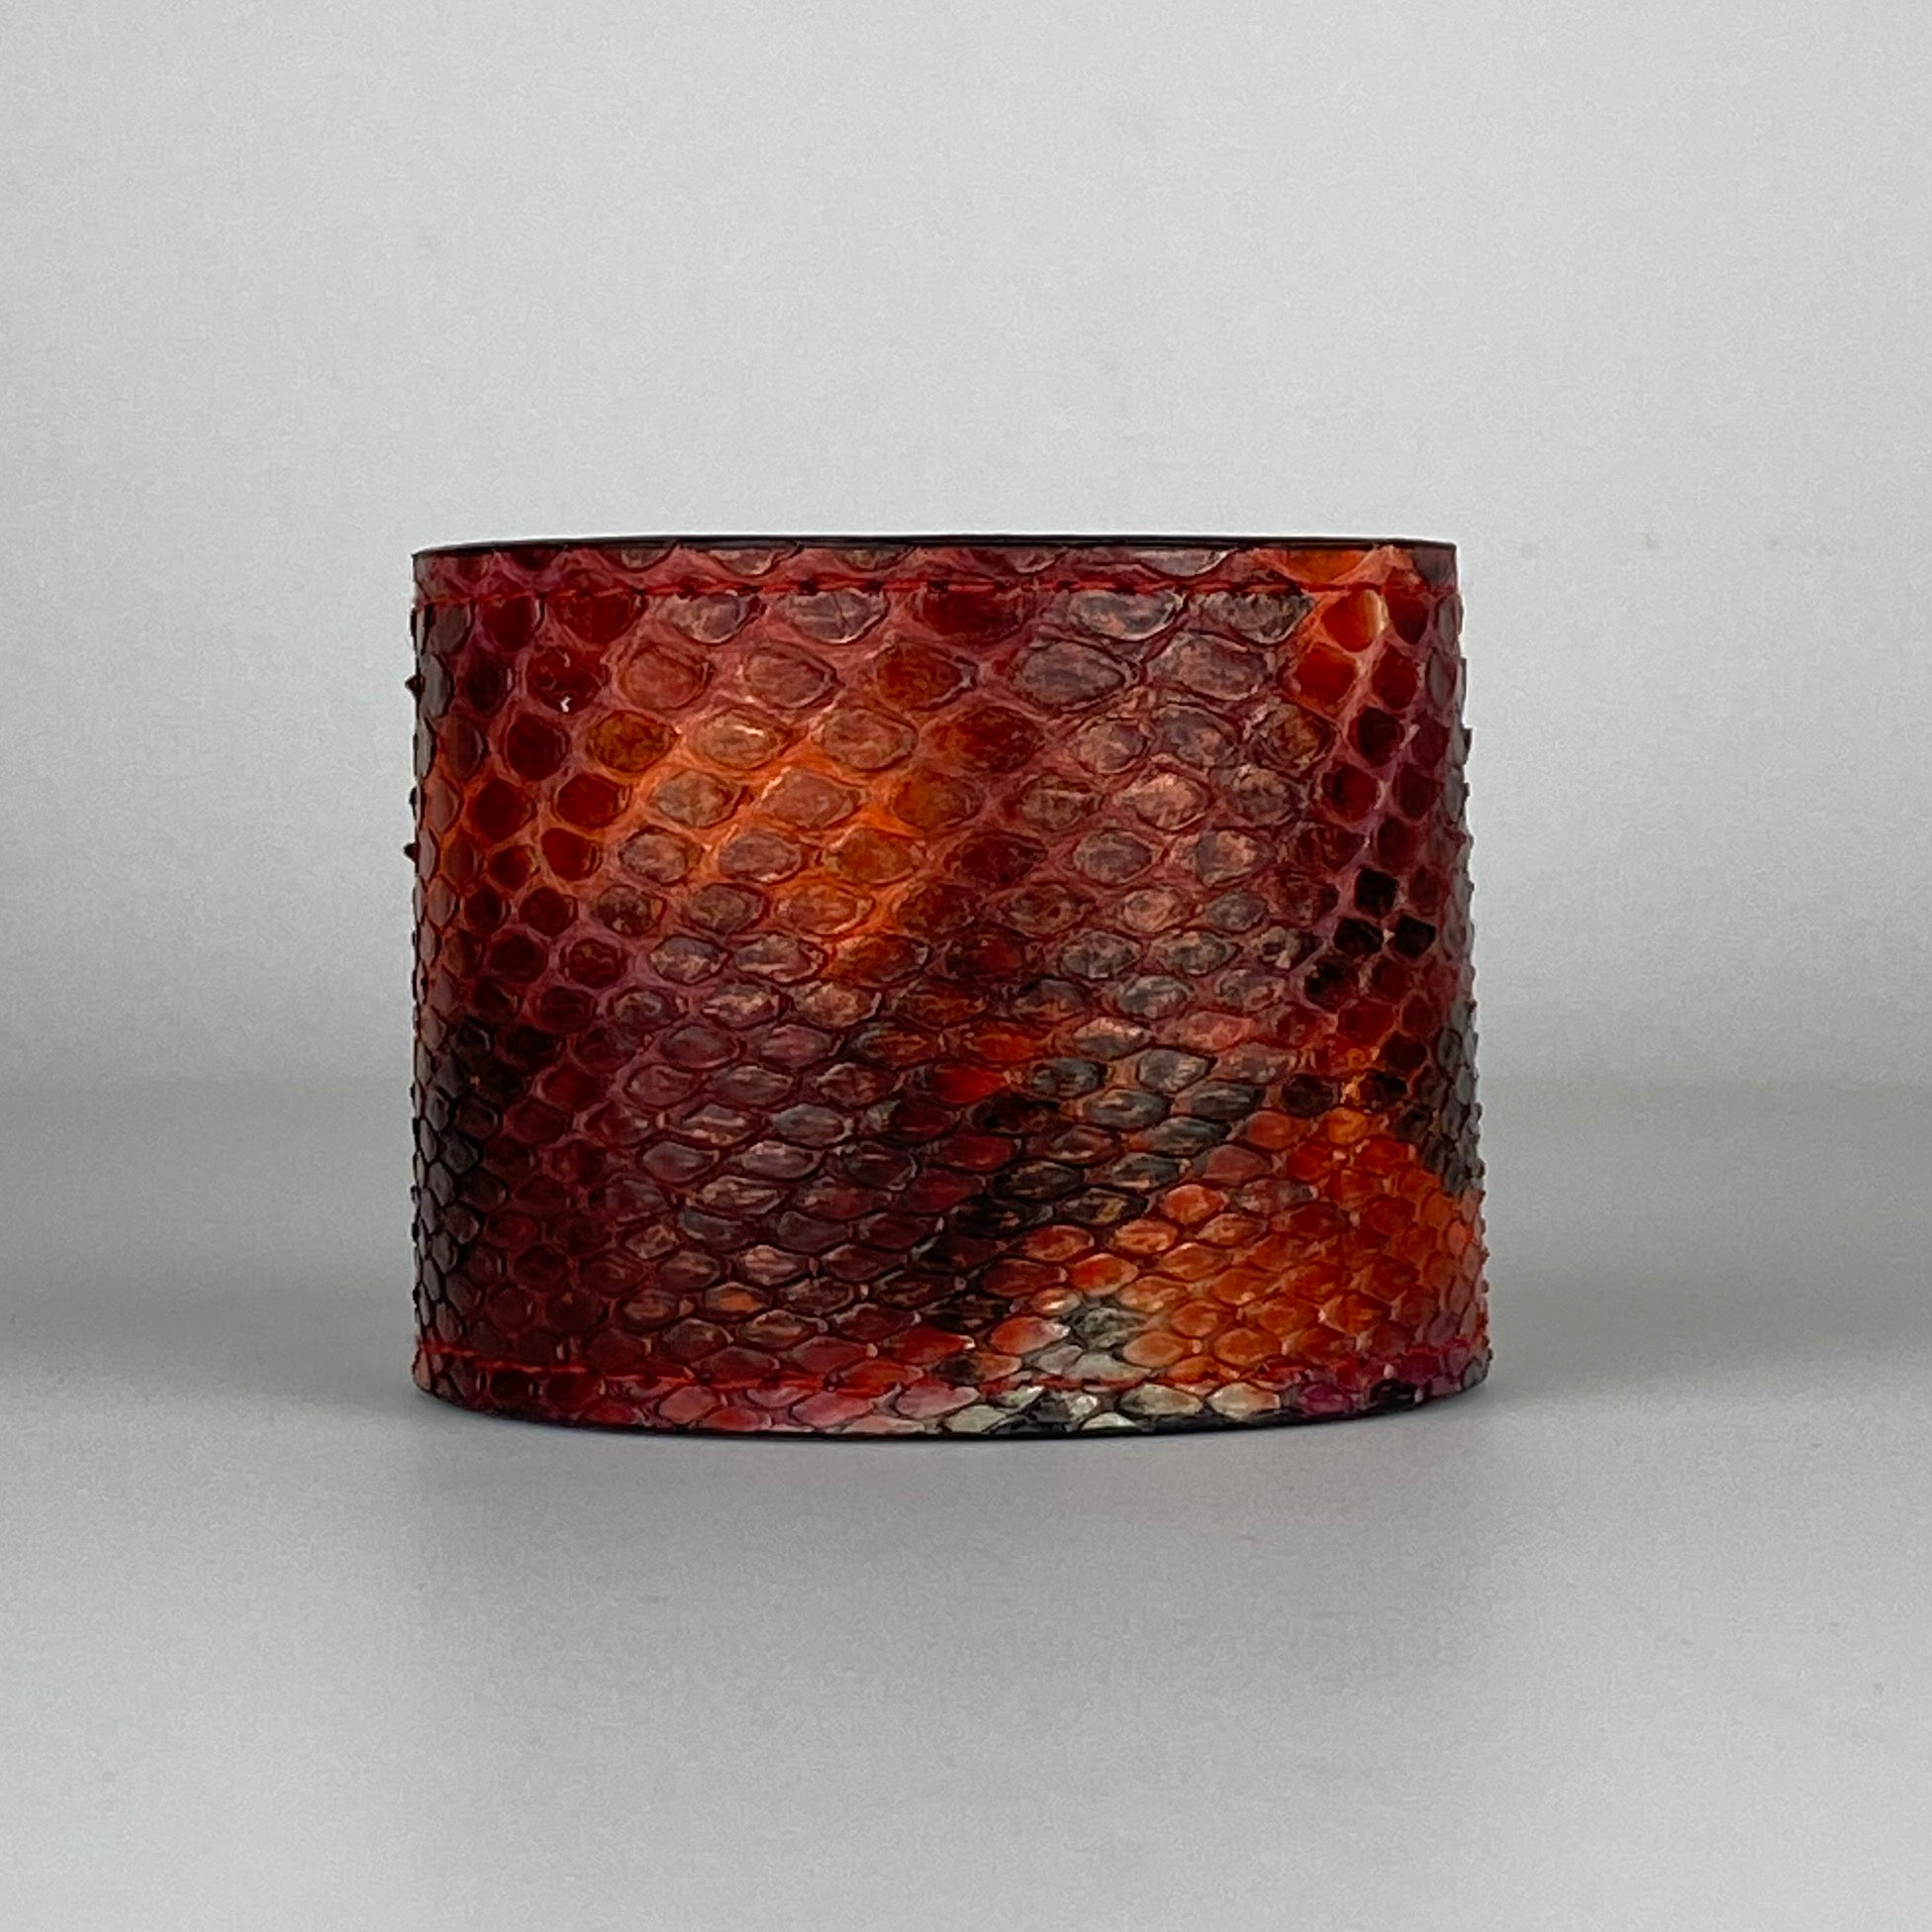 RED & ORANGE SNAKESKIN CUFF L/XL ADJUSTABLE